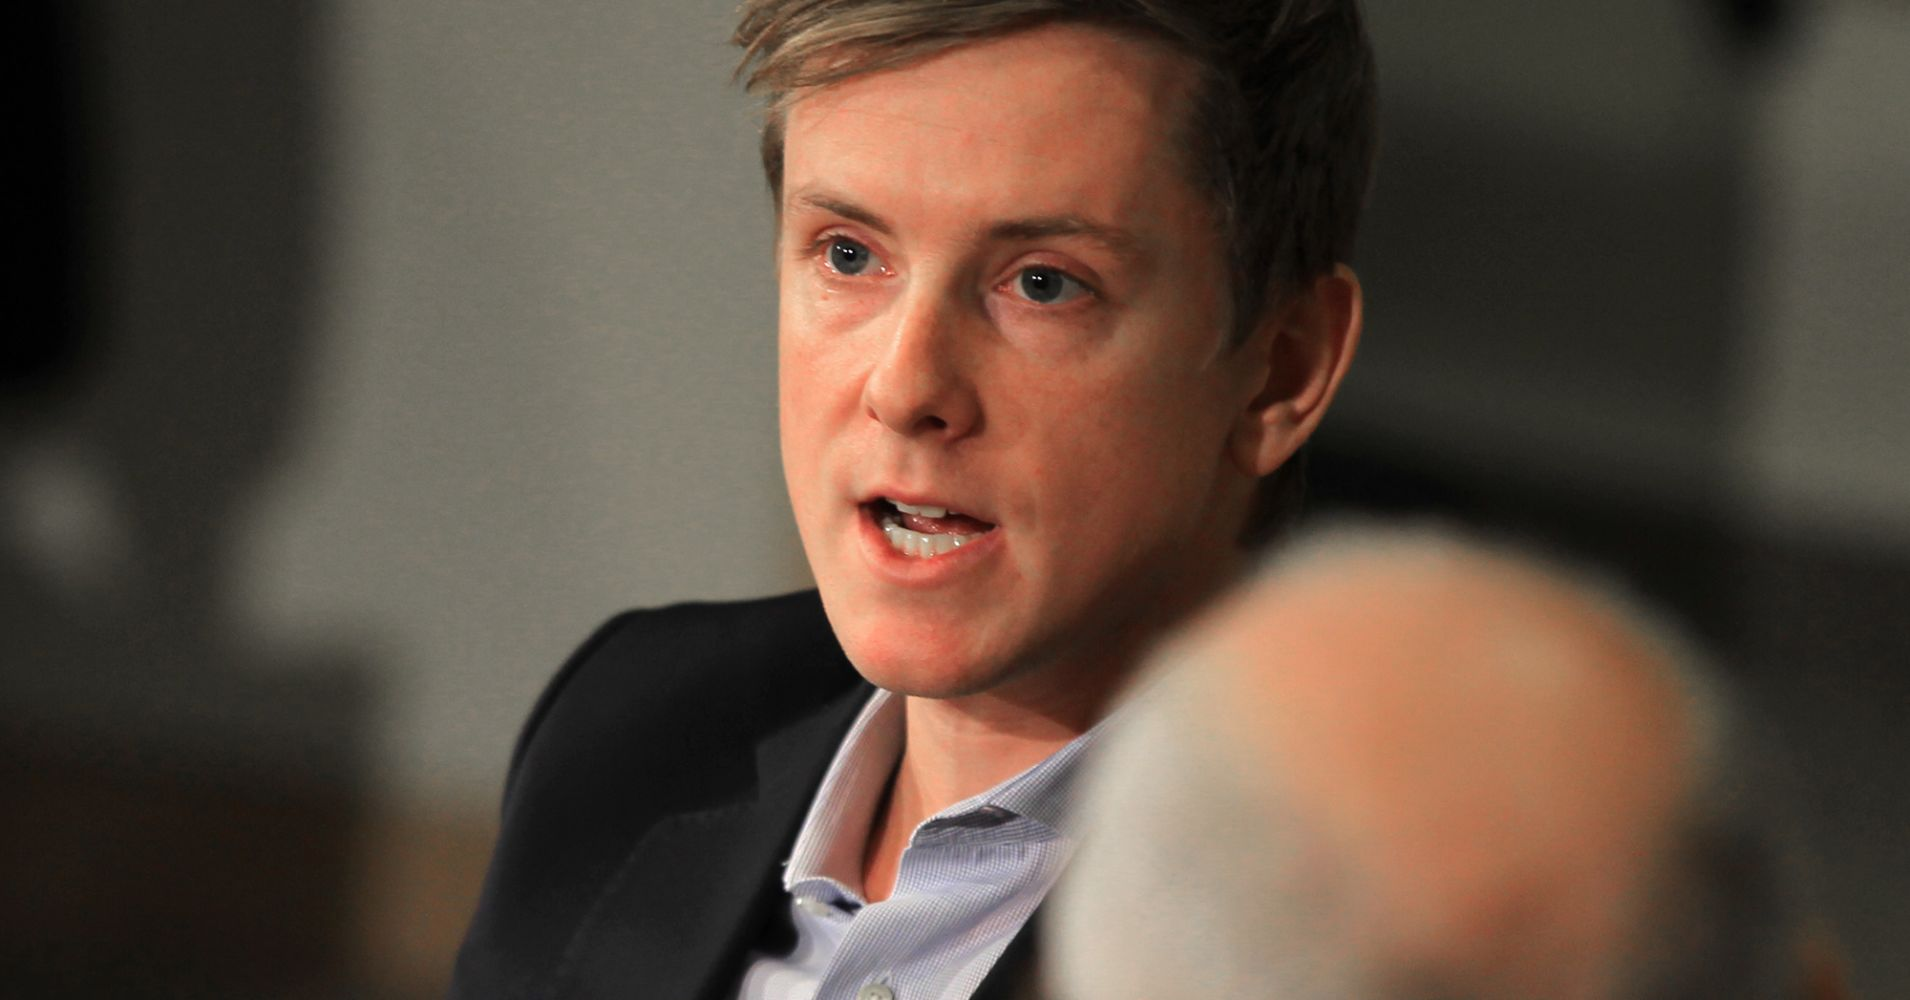 Facebook co-founder Chris Hughes calls for the company to be broken up